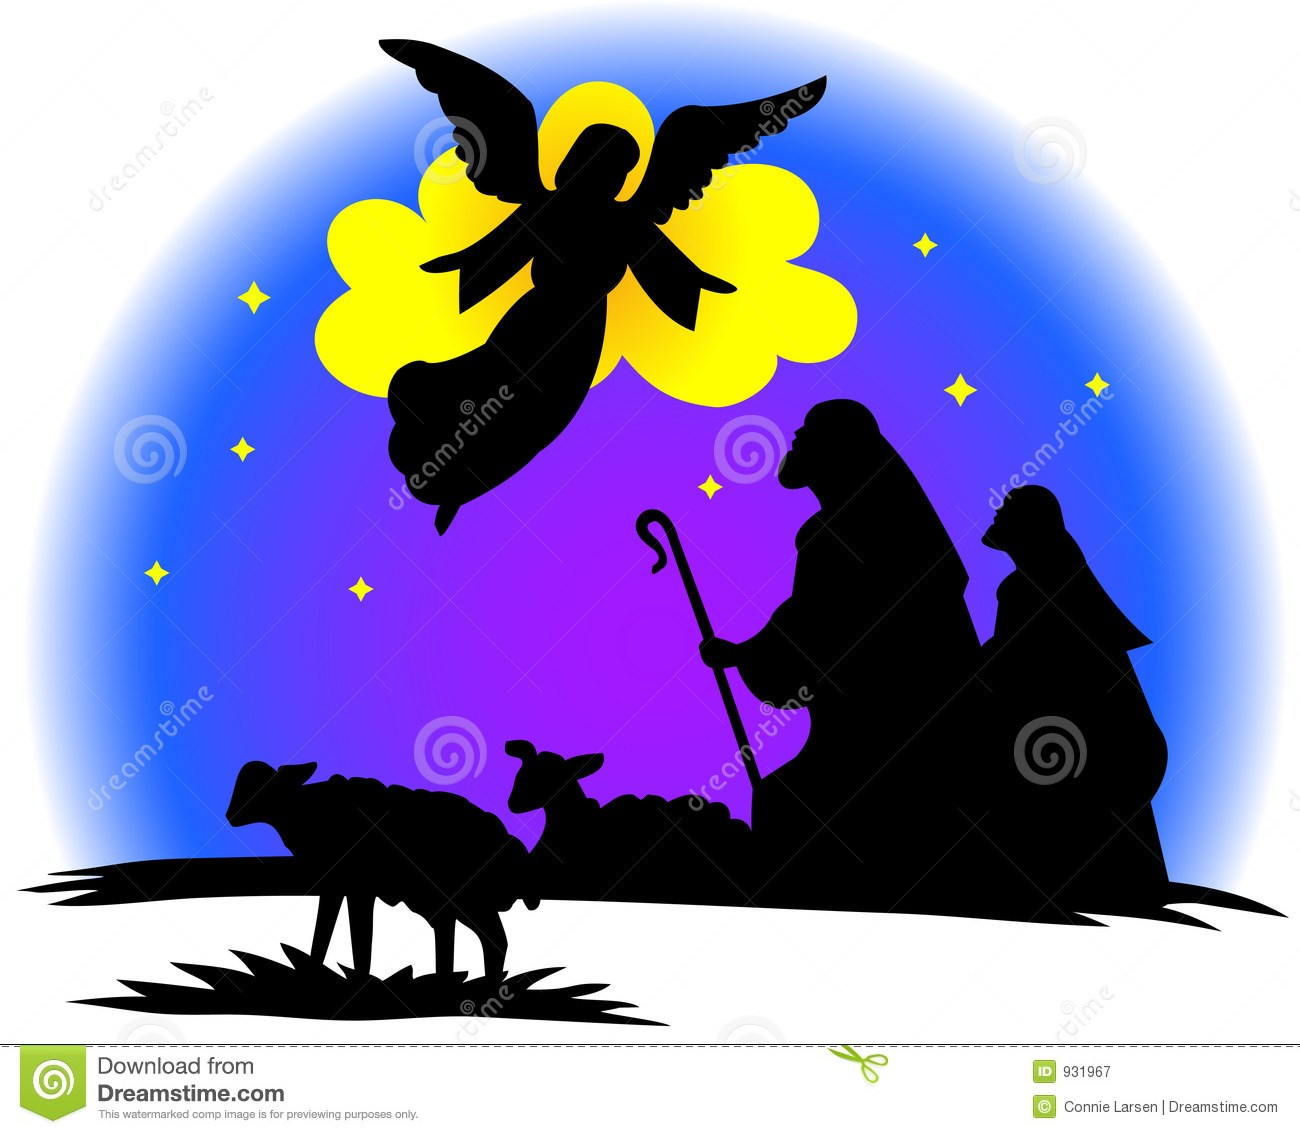 Angels and shepherds clipart 4 » Clipart Portal.